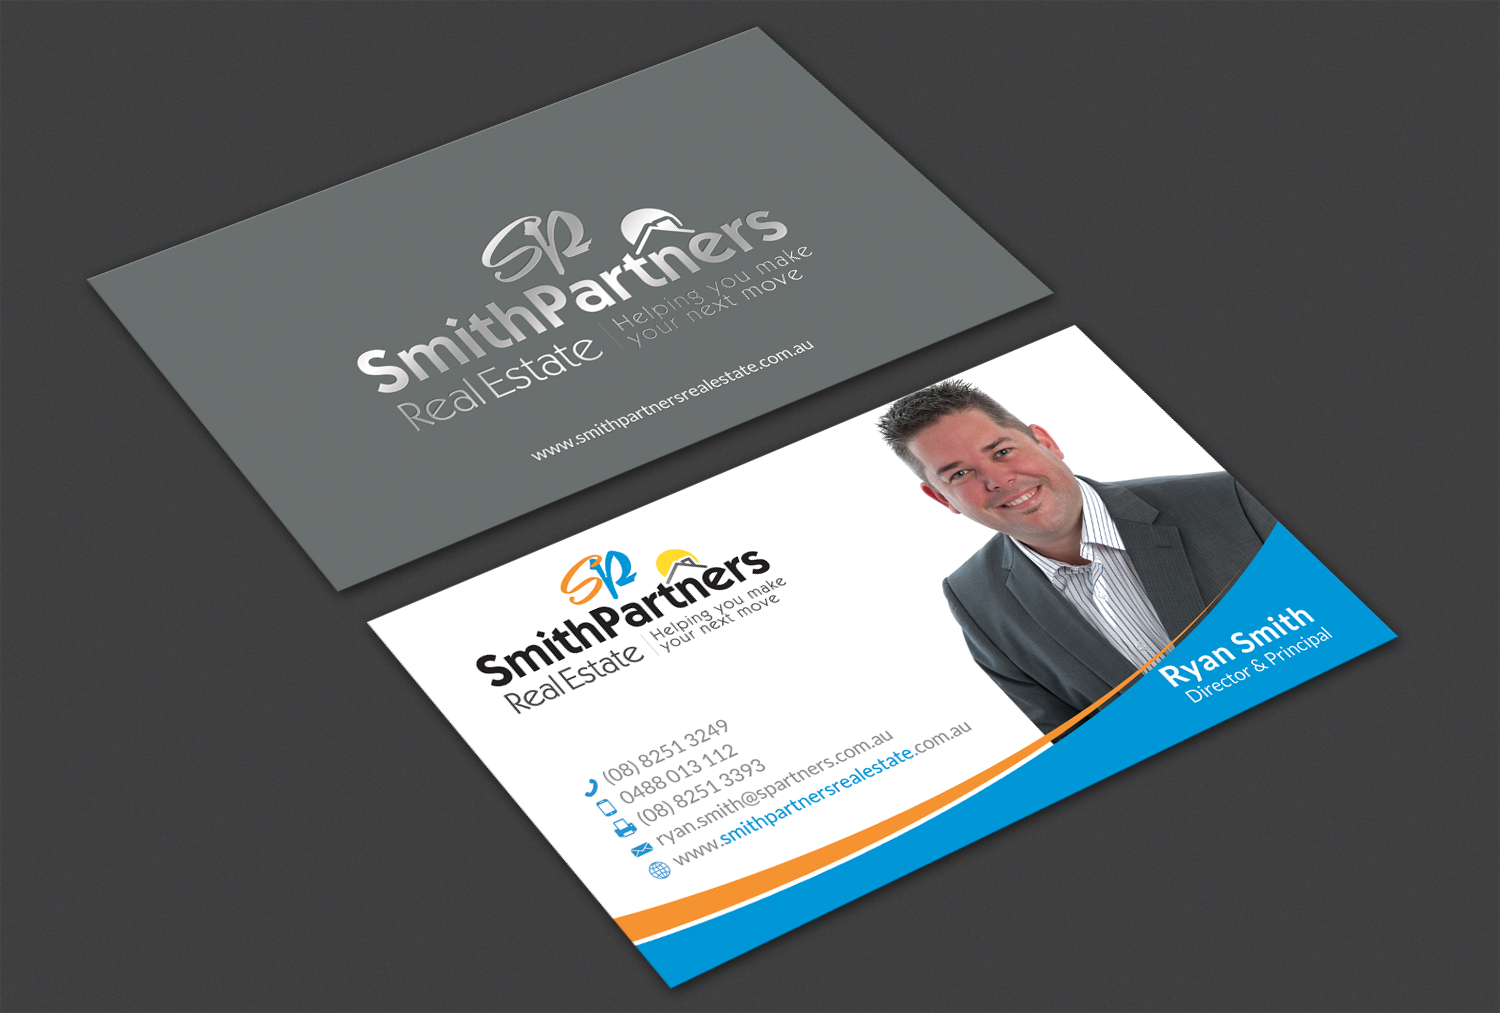 Modern professional real estate agent business card design for business card design by alaminenterprise for smith partners real estate design 12374809 colourmoves